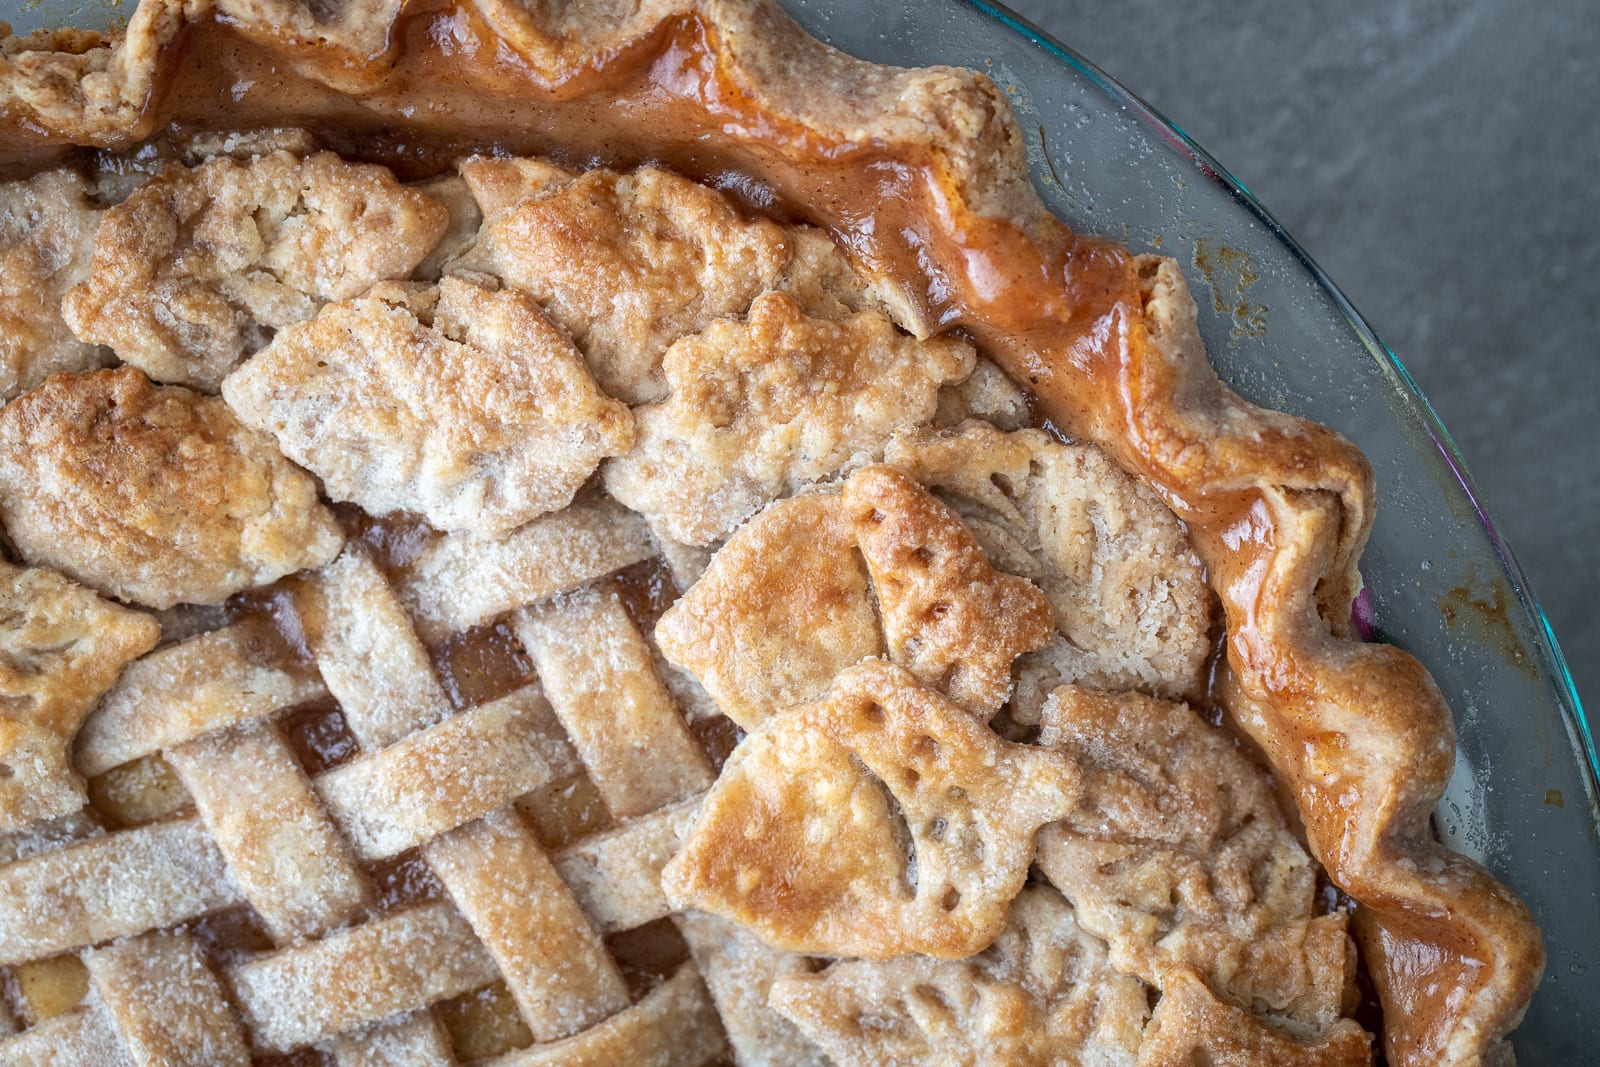 The Perfect Apple Pie baked in a glass pie plate with leaves and acorn pie decorations